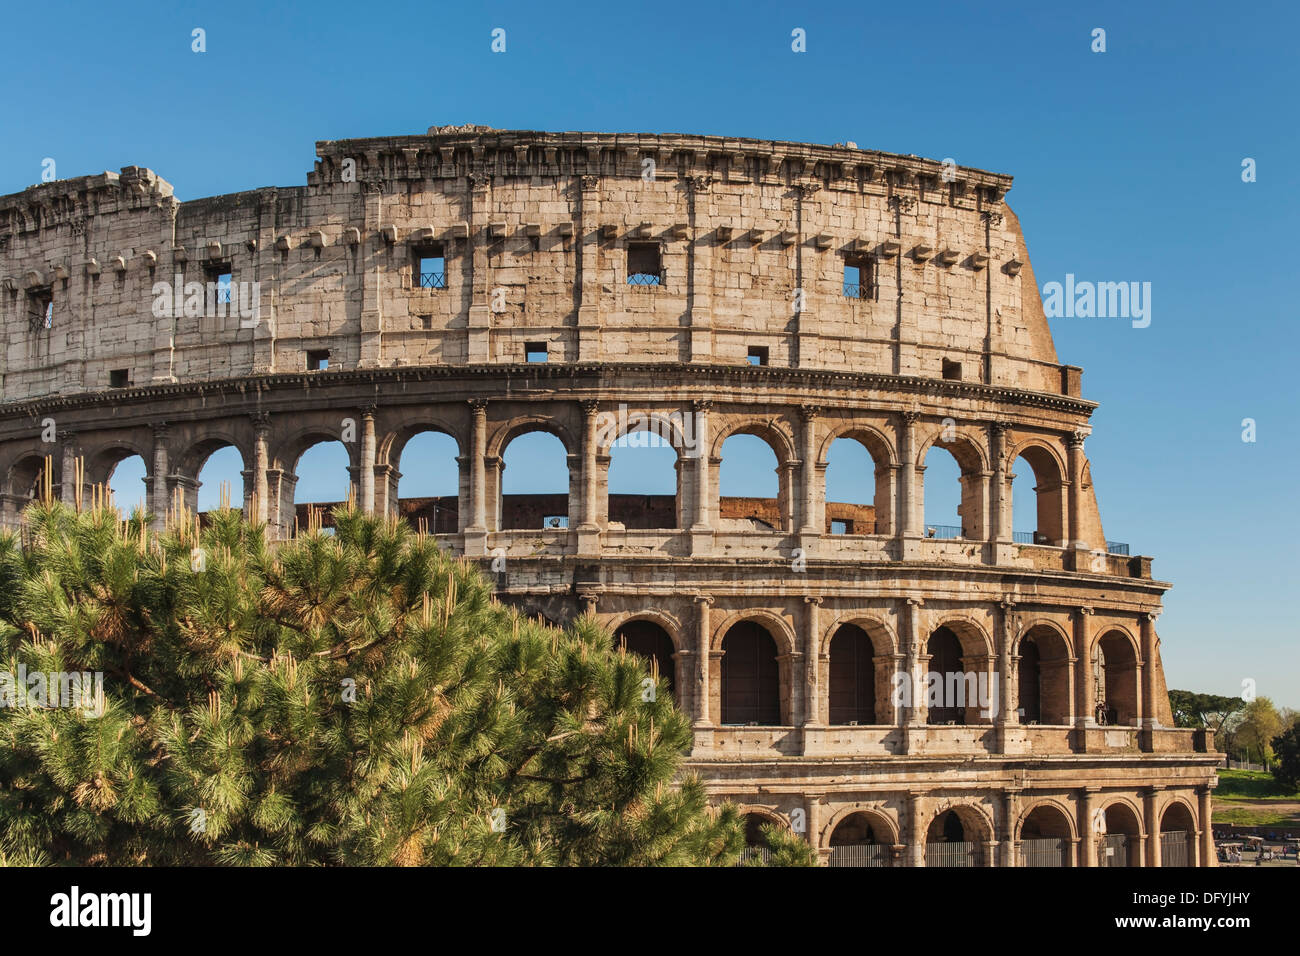 The Colosseum is the largest amphitheater built in ancient Rome from 72 to 80 AD, Rome, Lazio, Italy, Europe Stock Photo